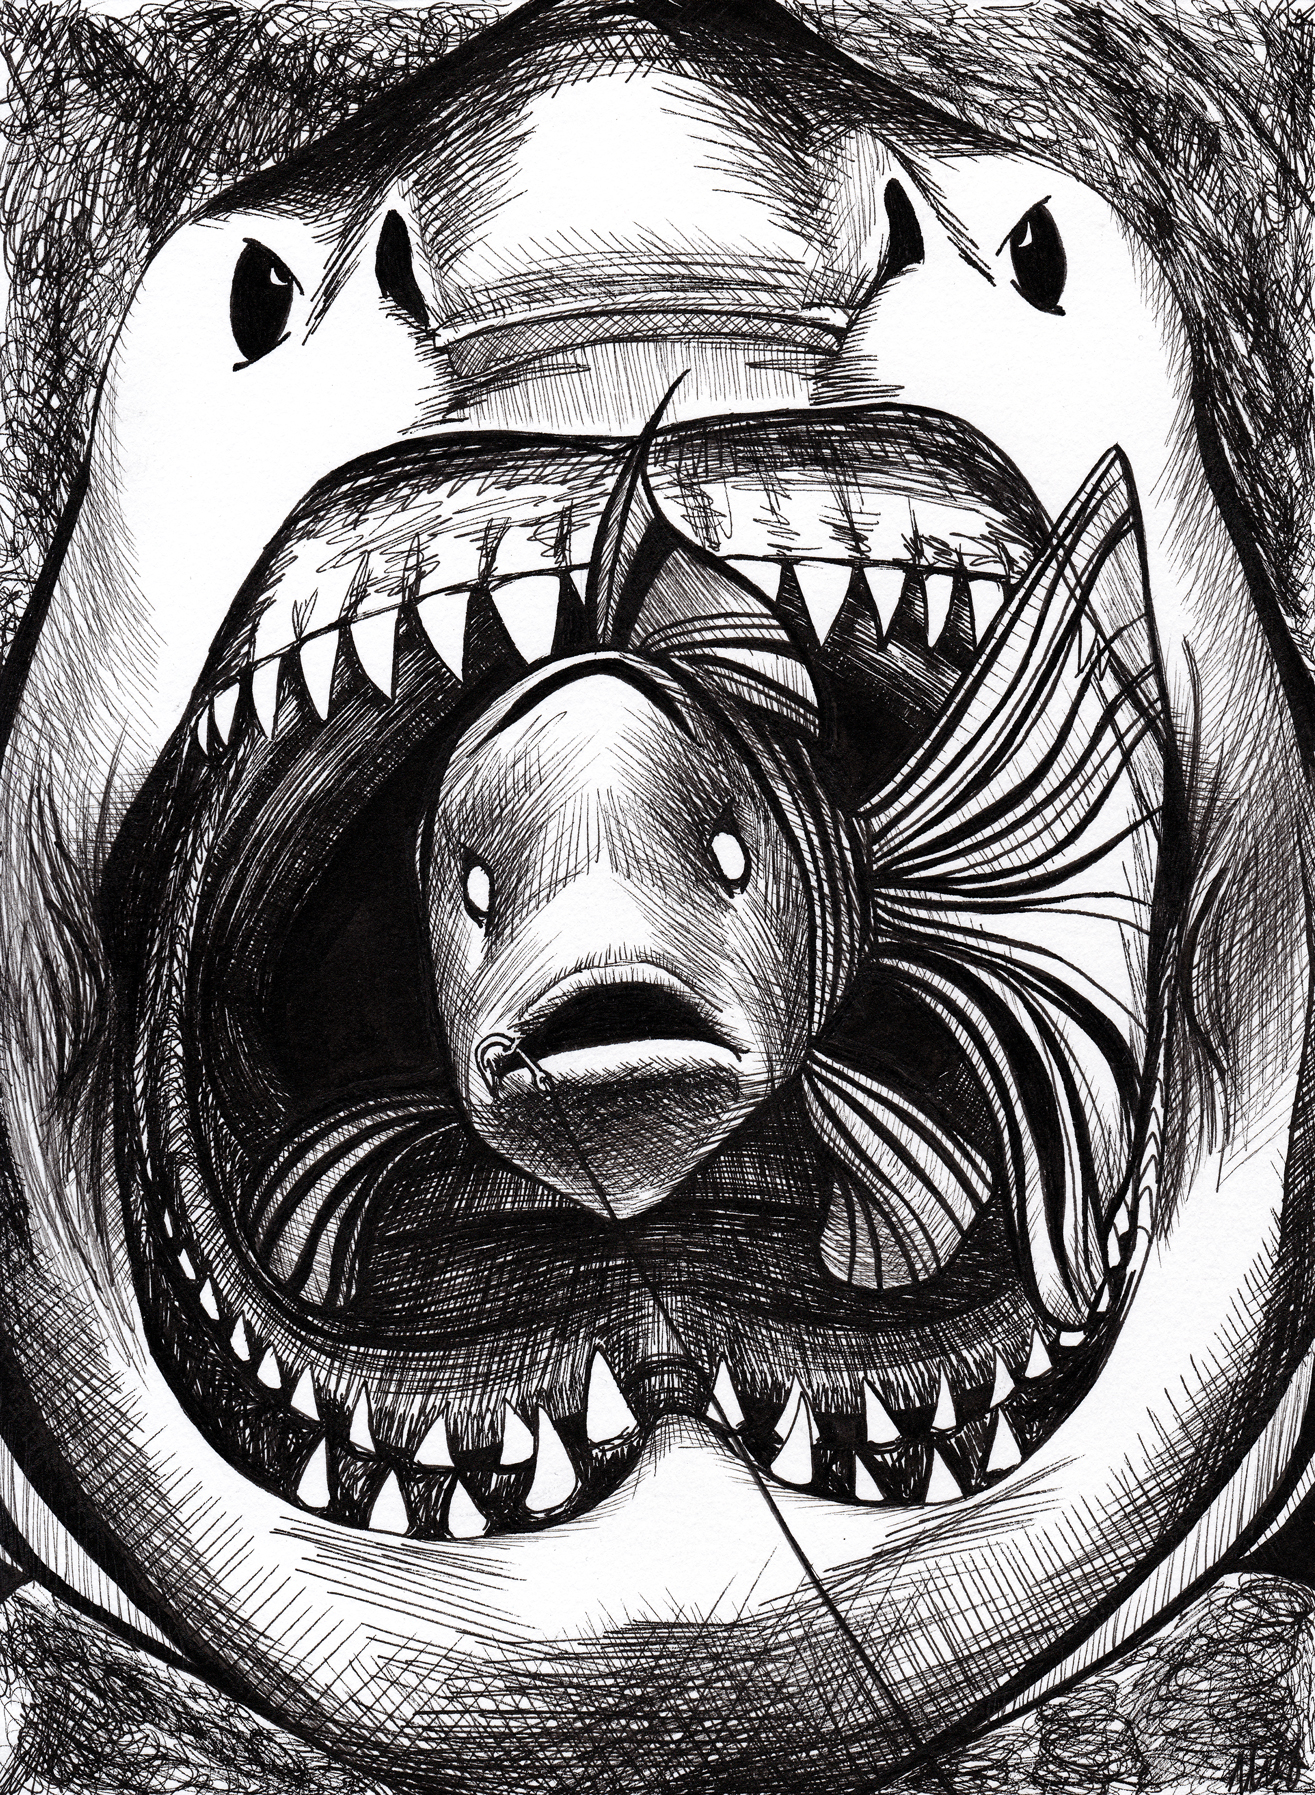 A scared fish trembles on the end of a fishing hook. Behind, the maw of a shark engulfs the view.